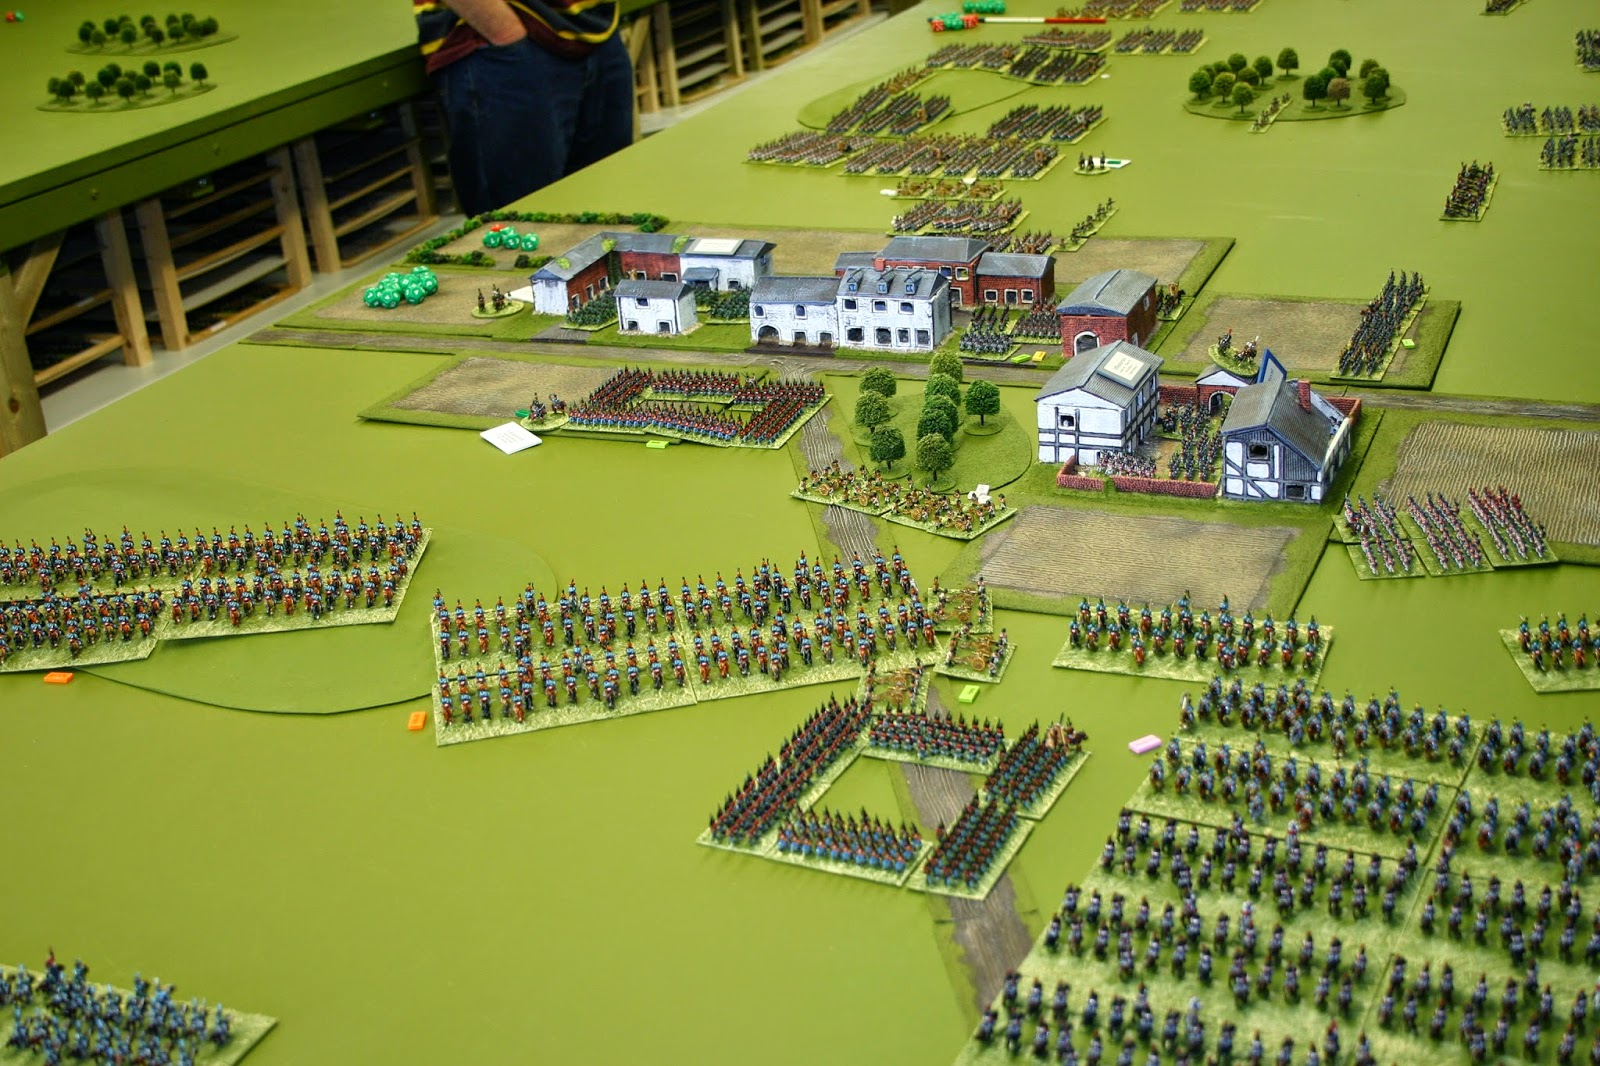 Battle of Ebelsberg